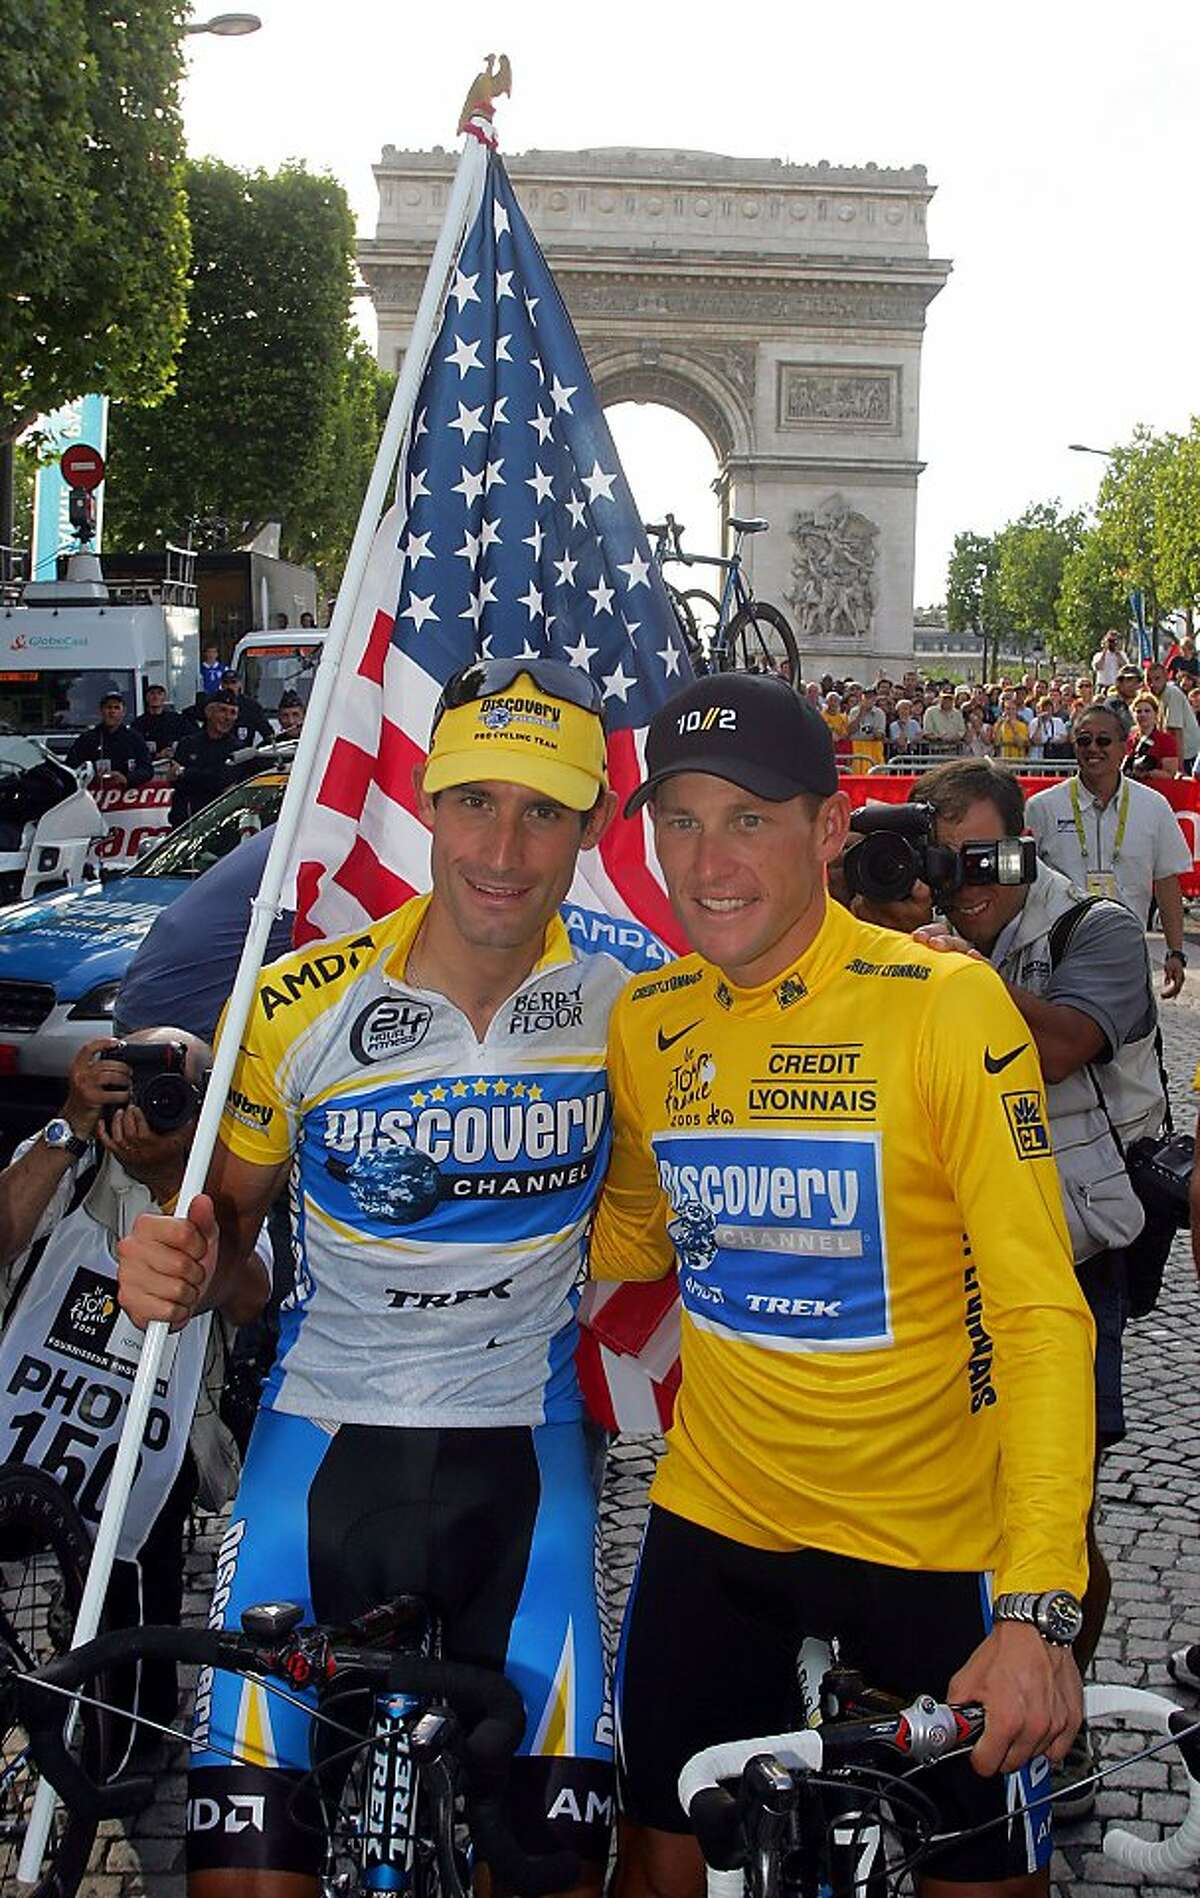 """FILE - In this July 24, 2005 file photo, Lance Armstrong, right, and his Discovery team colleague George Hincapie pose for photographers on the Champs Elysees during a victory parade after Armstrong won his 7th straight Tour de France cycling race in Paris. A report by """"60 Minutes"""" says Hincapie, a longtime member of Lance Armstrong's inner circle, has told federal authorities he saw the seven-time Tour de France winner use performance-enhancing drugs. A segment of the report aired Friday night, May 20,2011 on the """"CBS Evening News."""""""